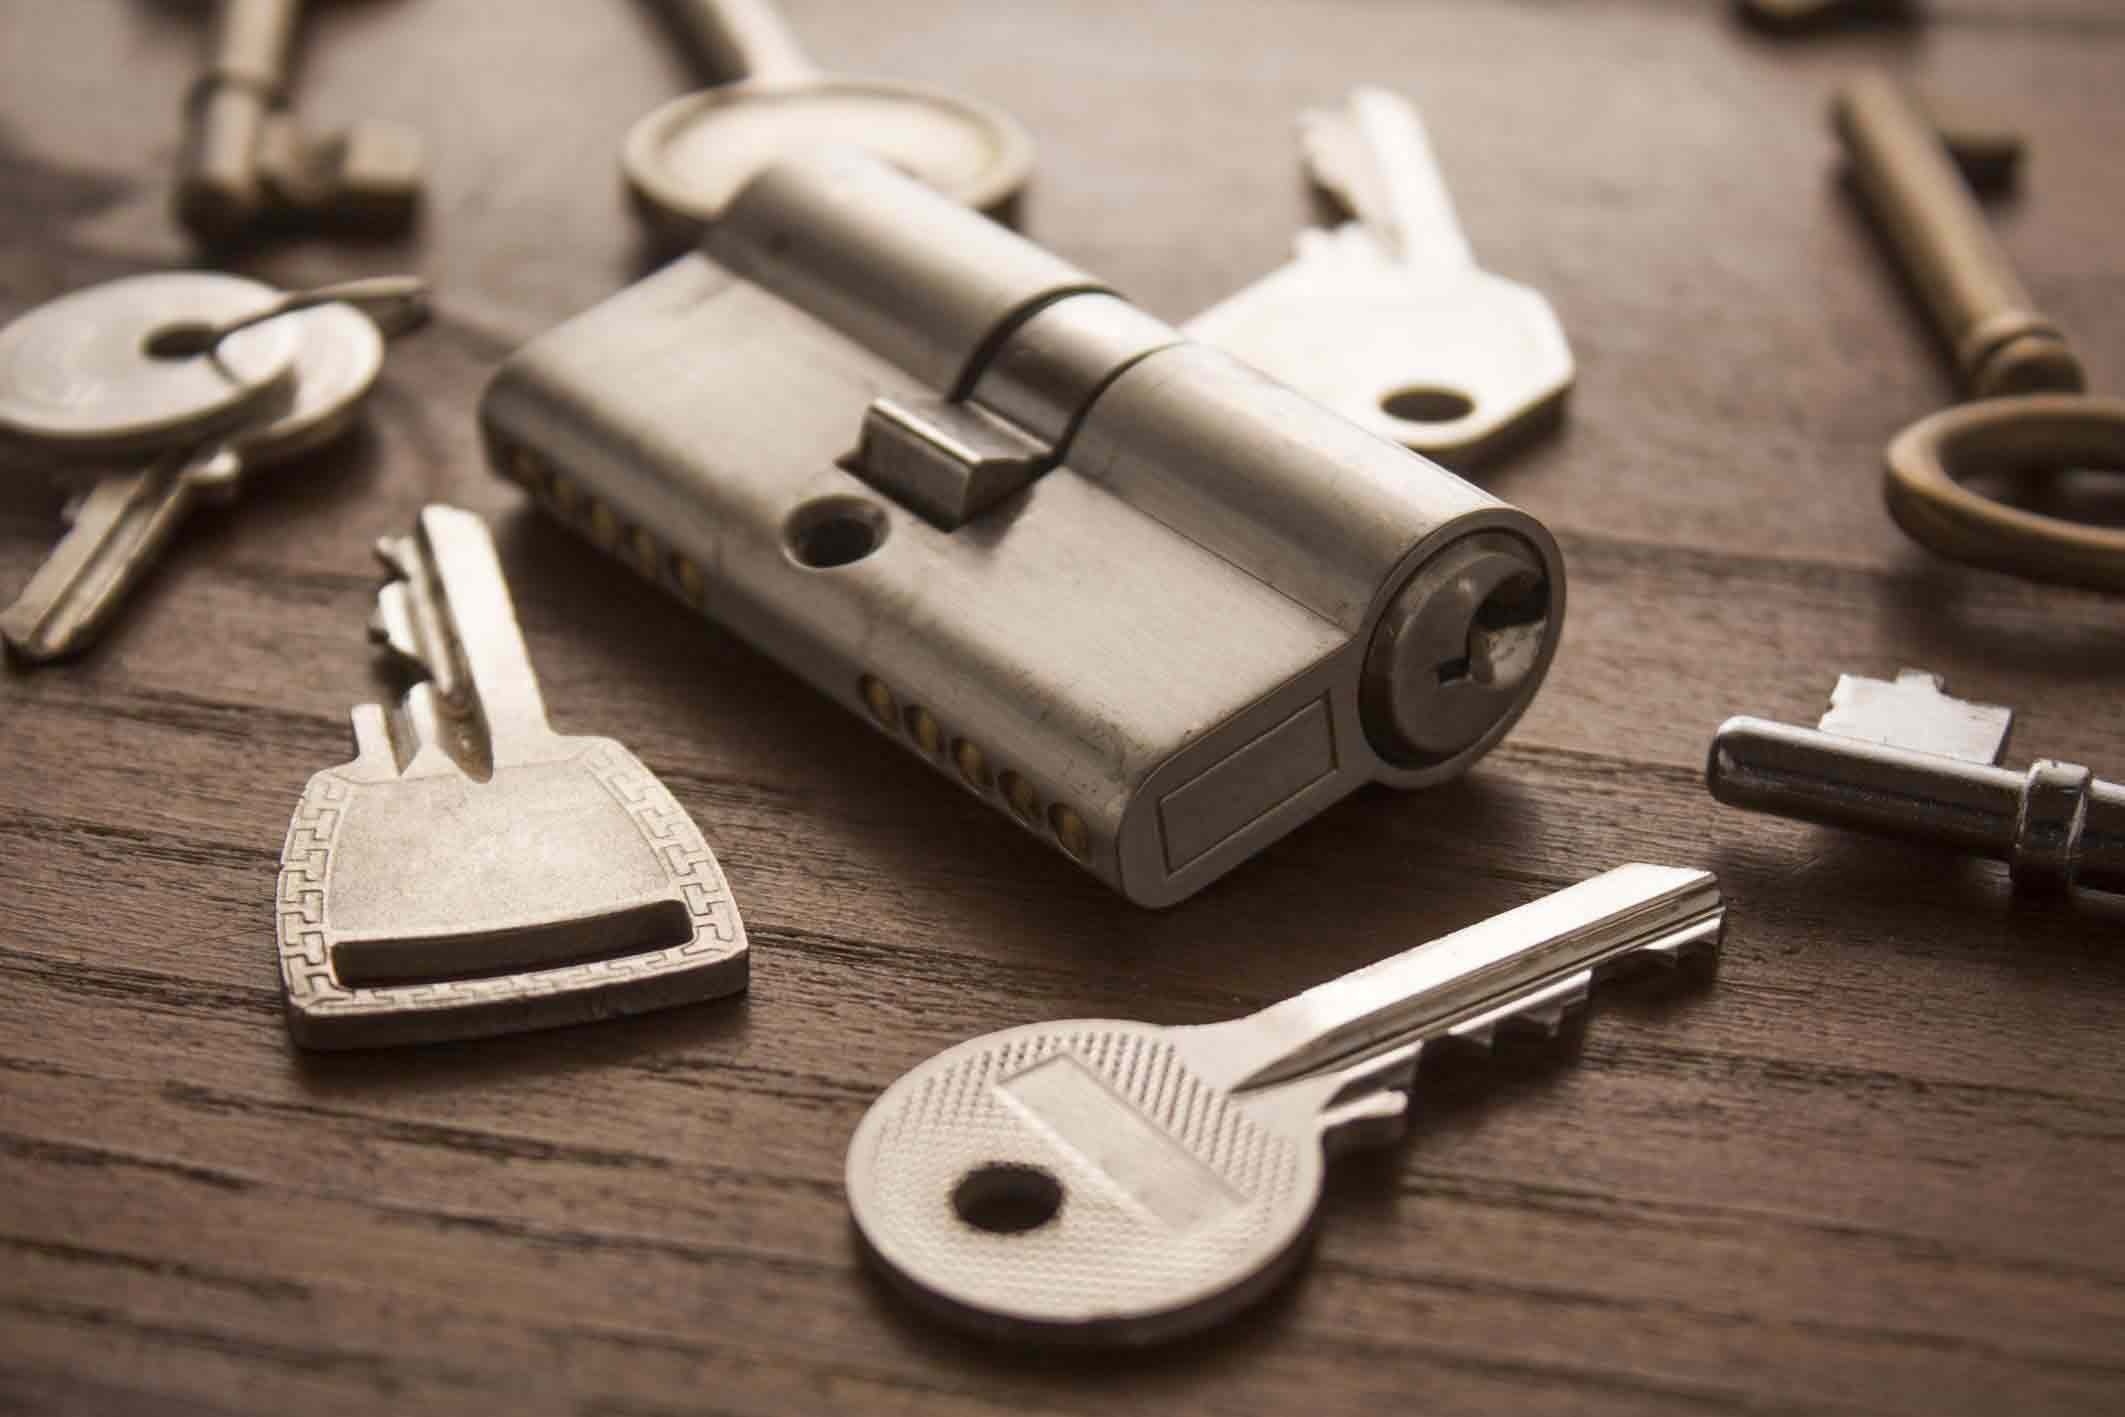 Making life easy for Locksmiths